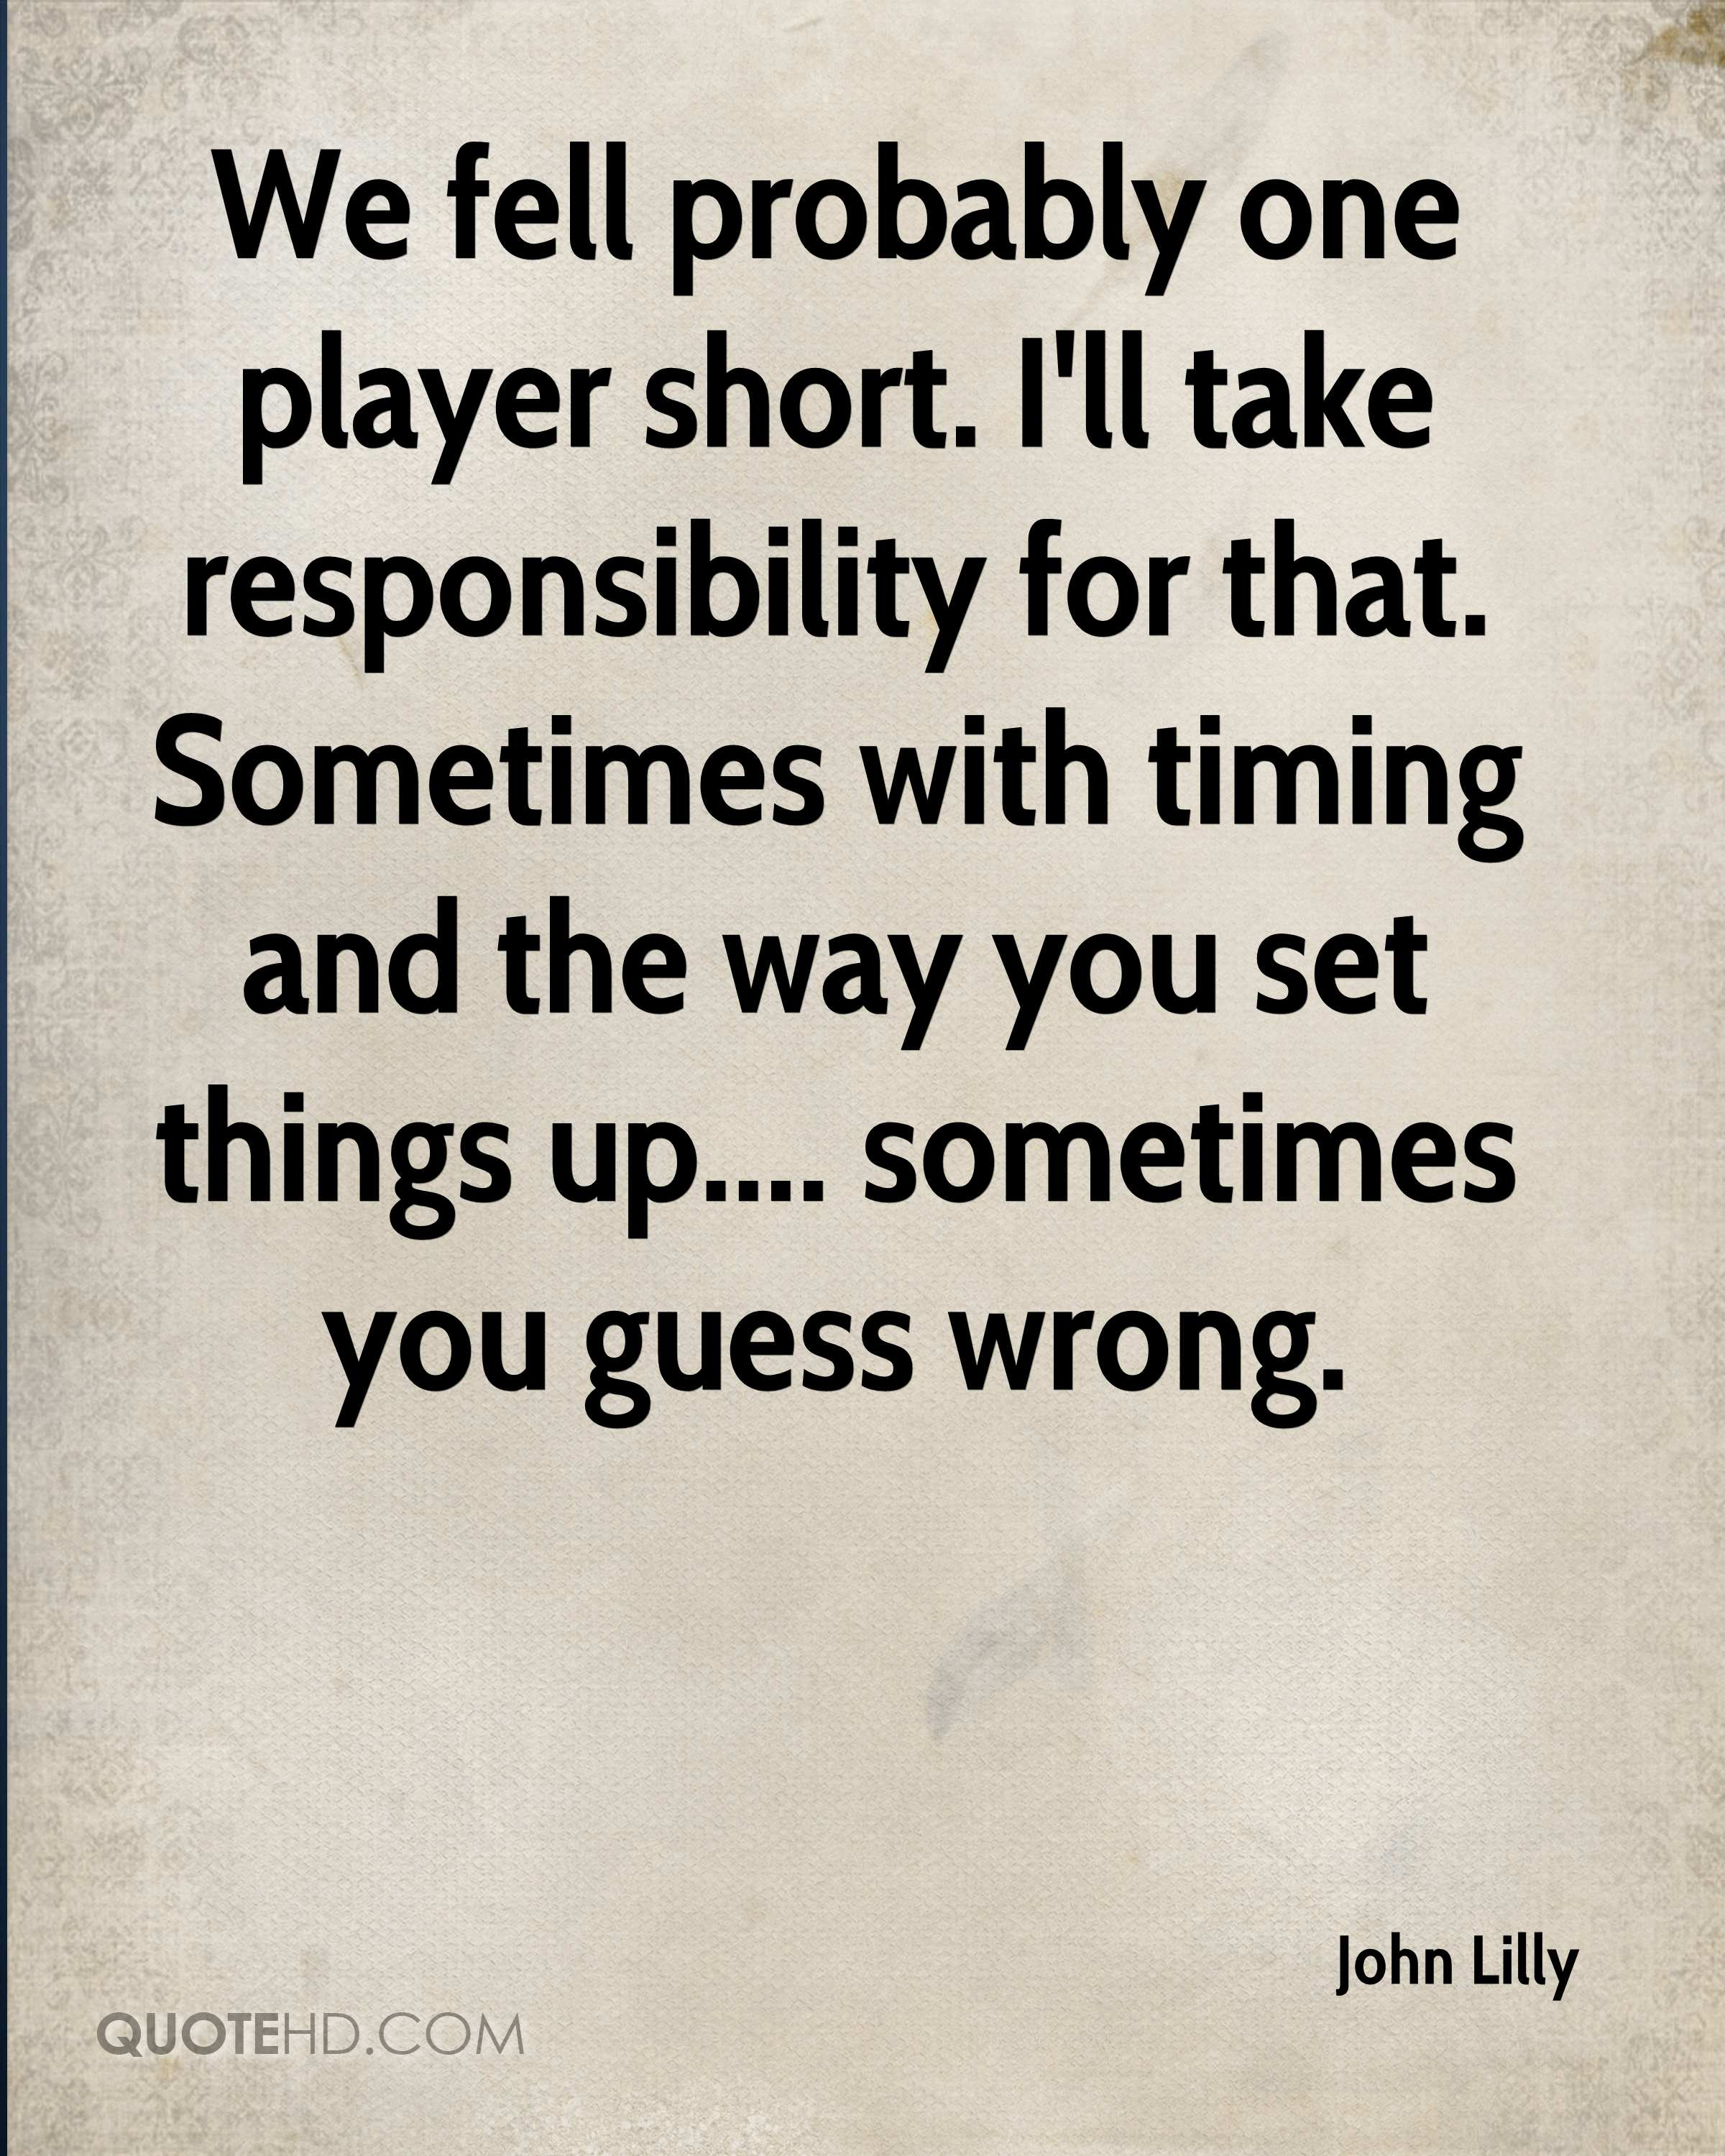 We fell probably one player short. I'll take responsibility for that. Sometimes with timing and the way you set things up.... sometimes you guess wrong.